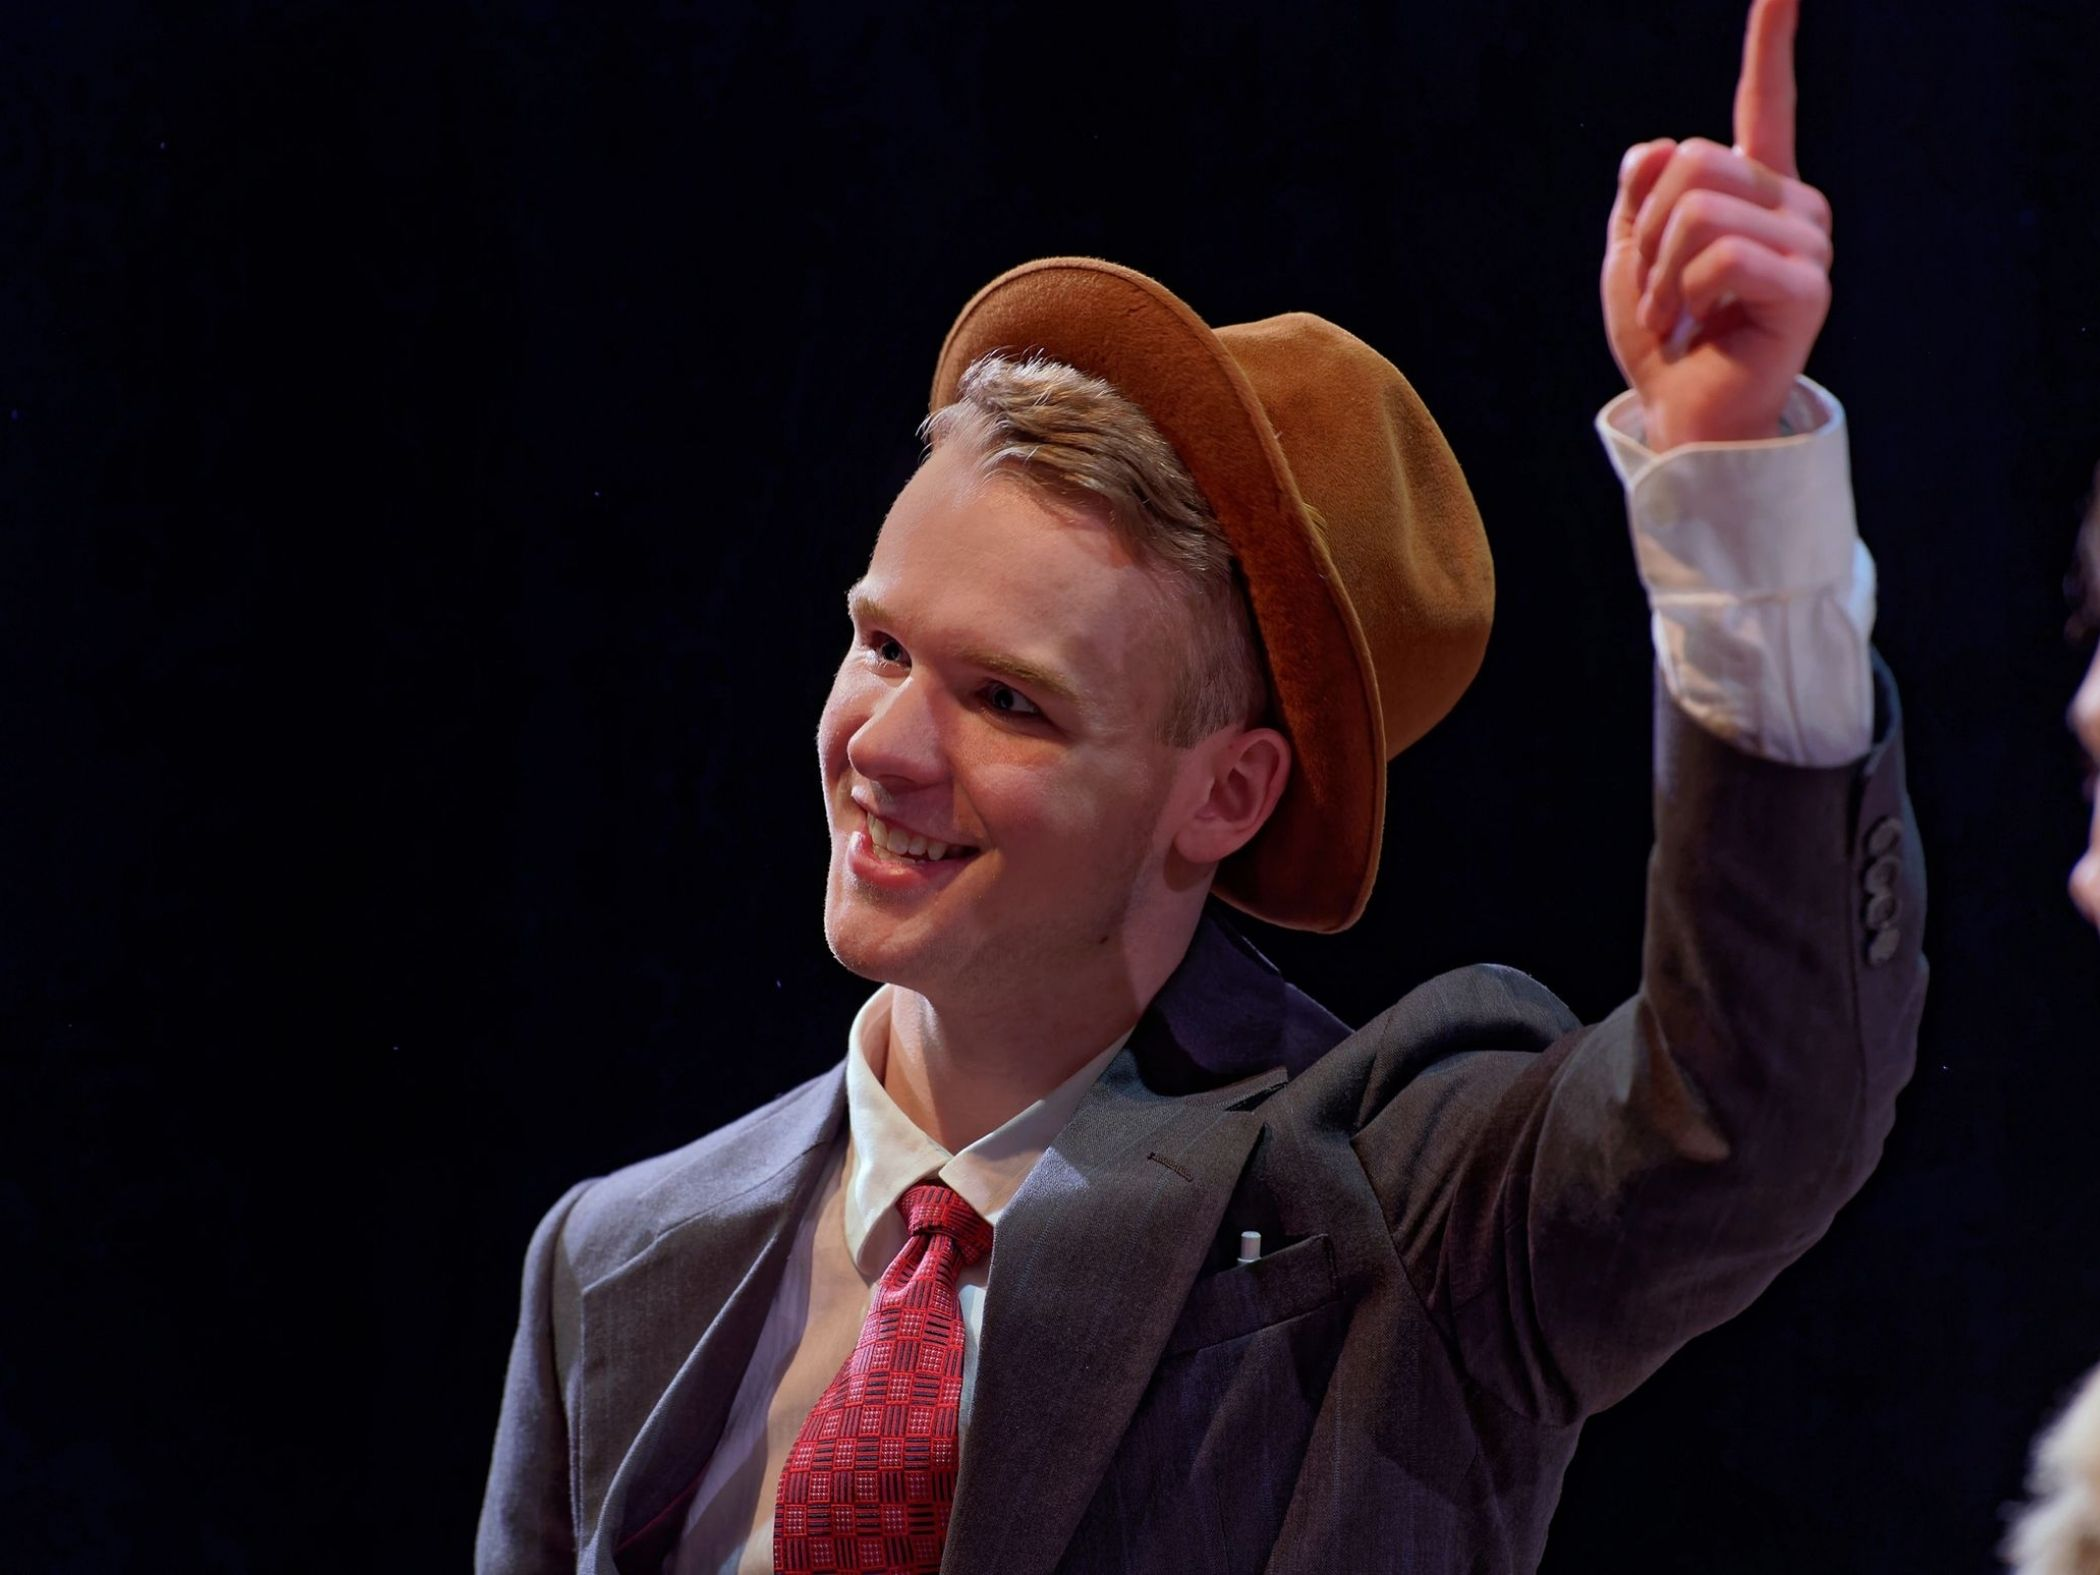 Theatre student in a suit and hat pointing up